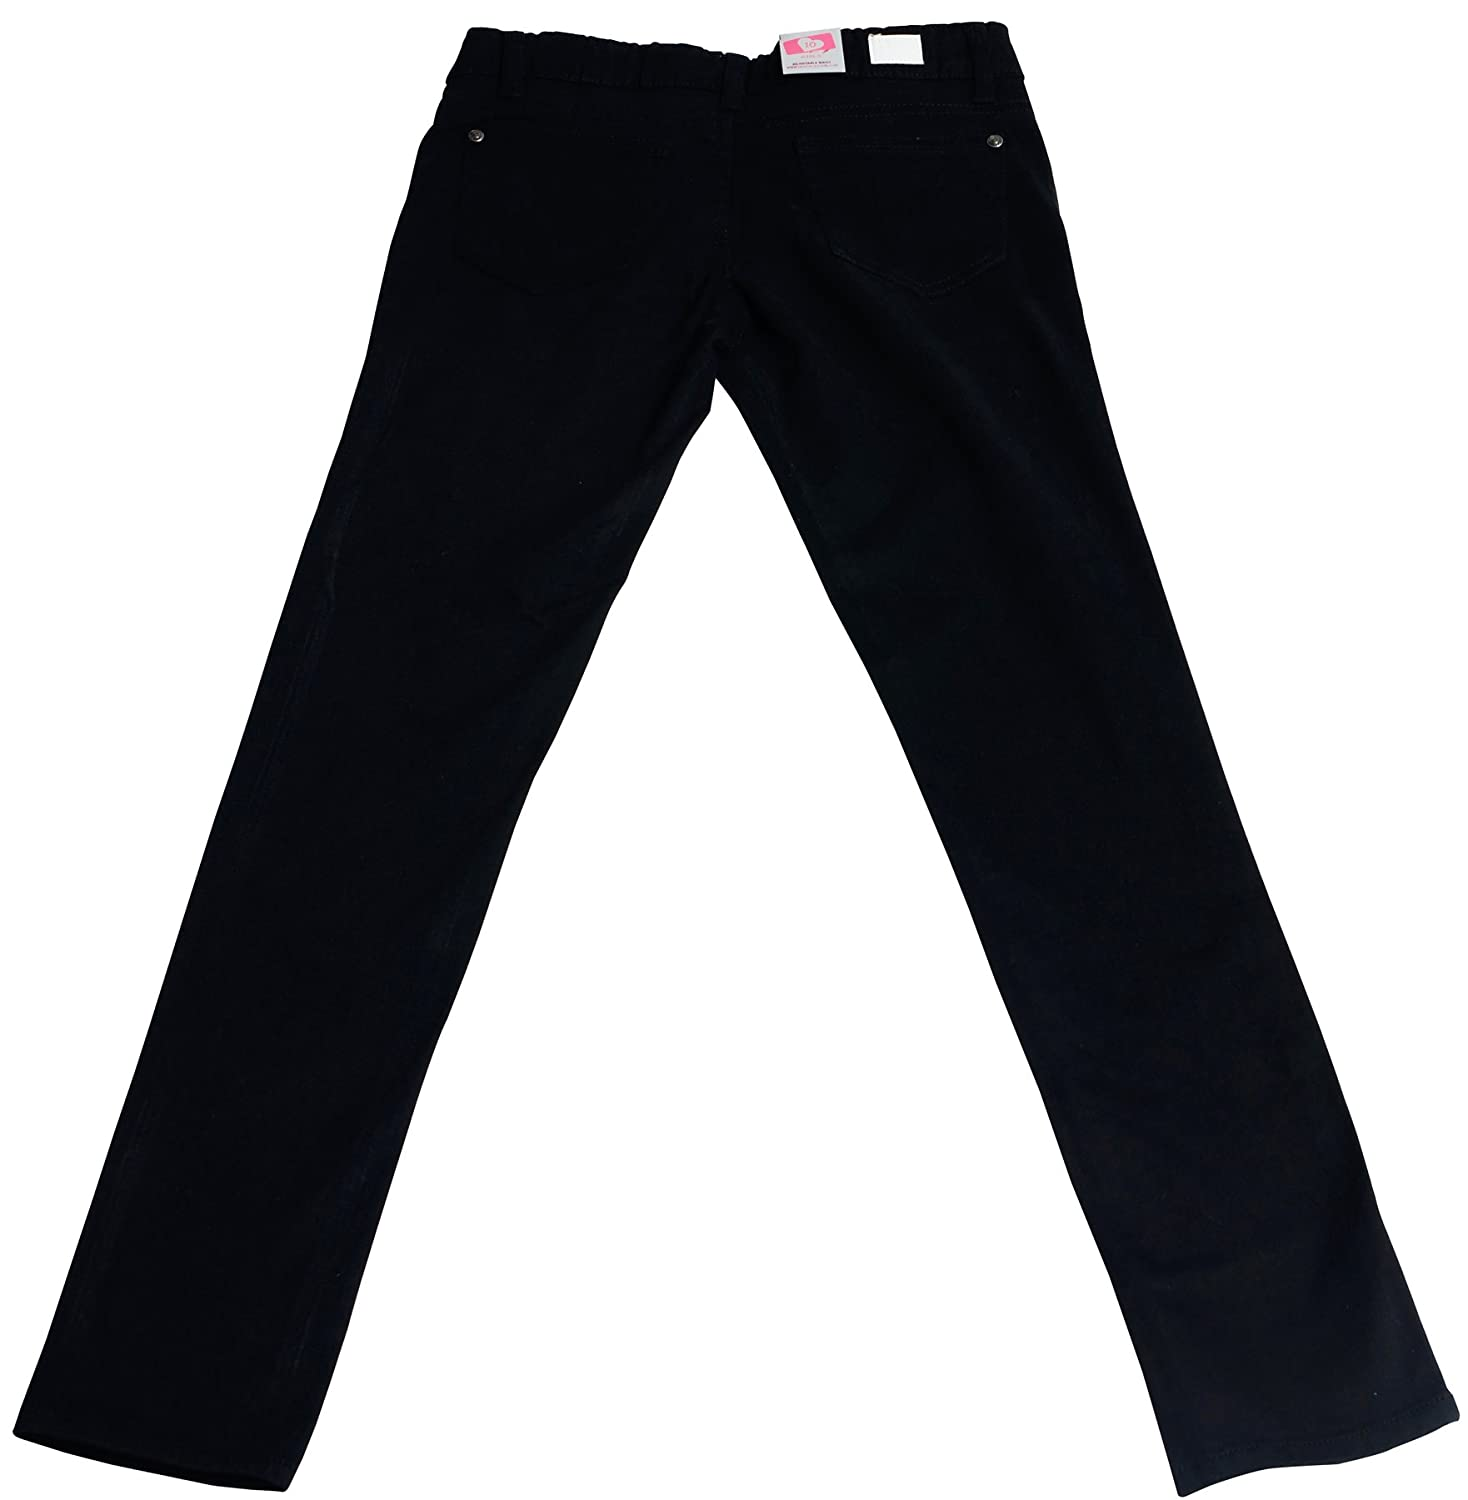 Hey Collection Big Girls Brushed Stretch Twill Skinny Jeans